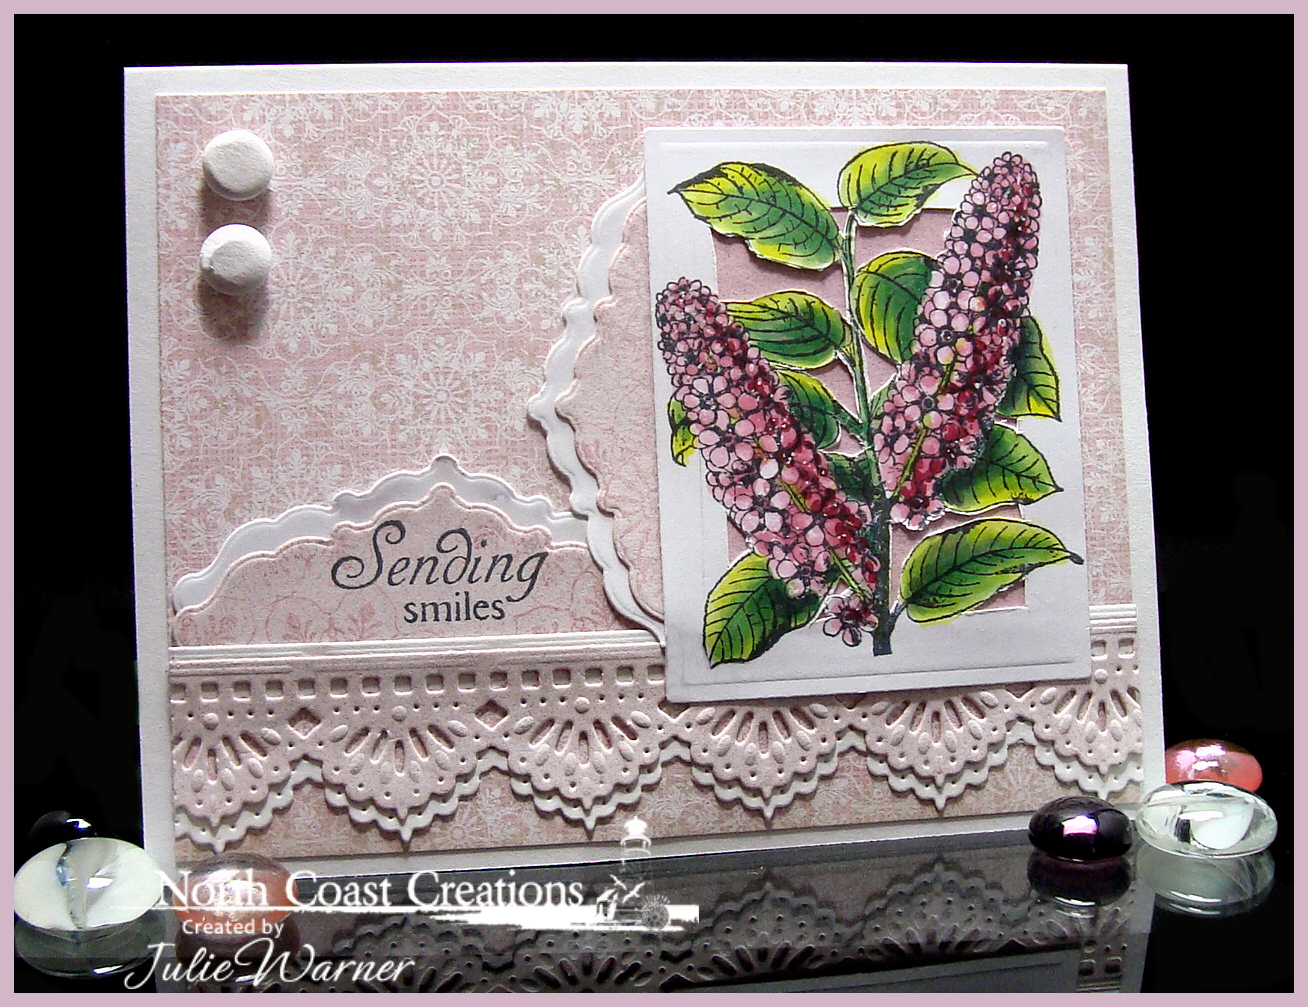 Stamps - North Coast Creations Floral Sentiments 4, ODBD Heart and Soul Paper Collection, ODBD Custom Ornate Borders and Flower Dies, ODBD Custom Beautiful Borders Dies